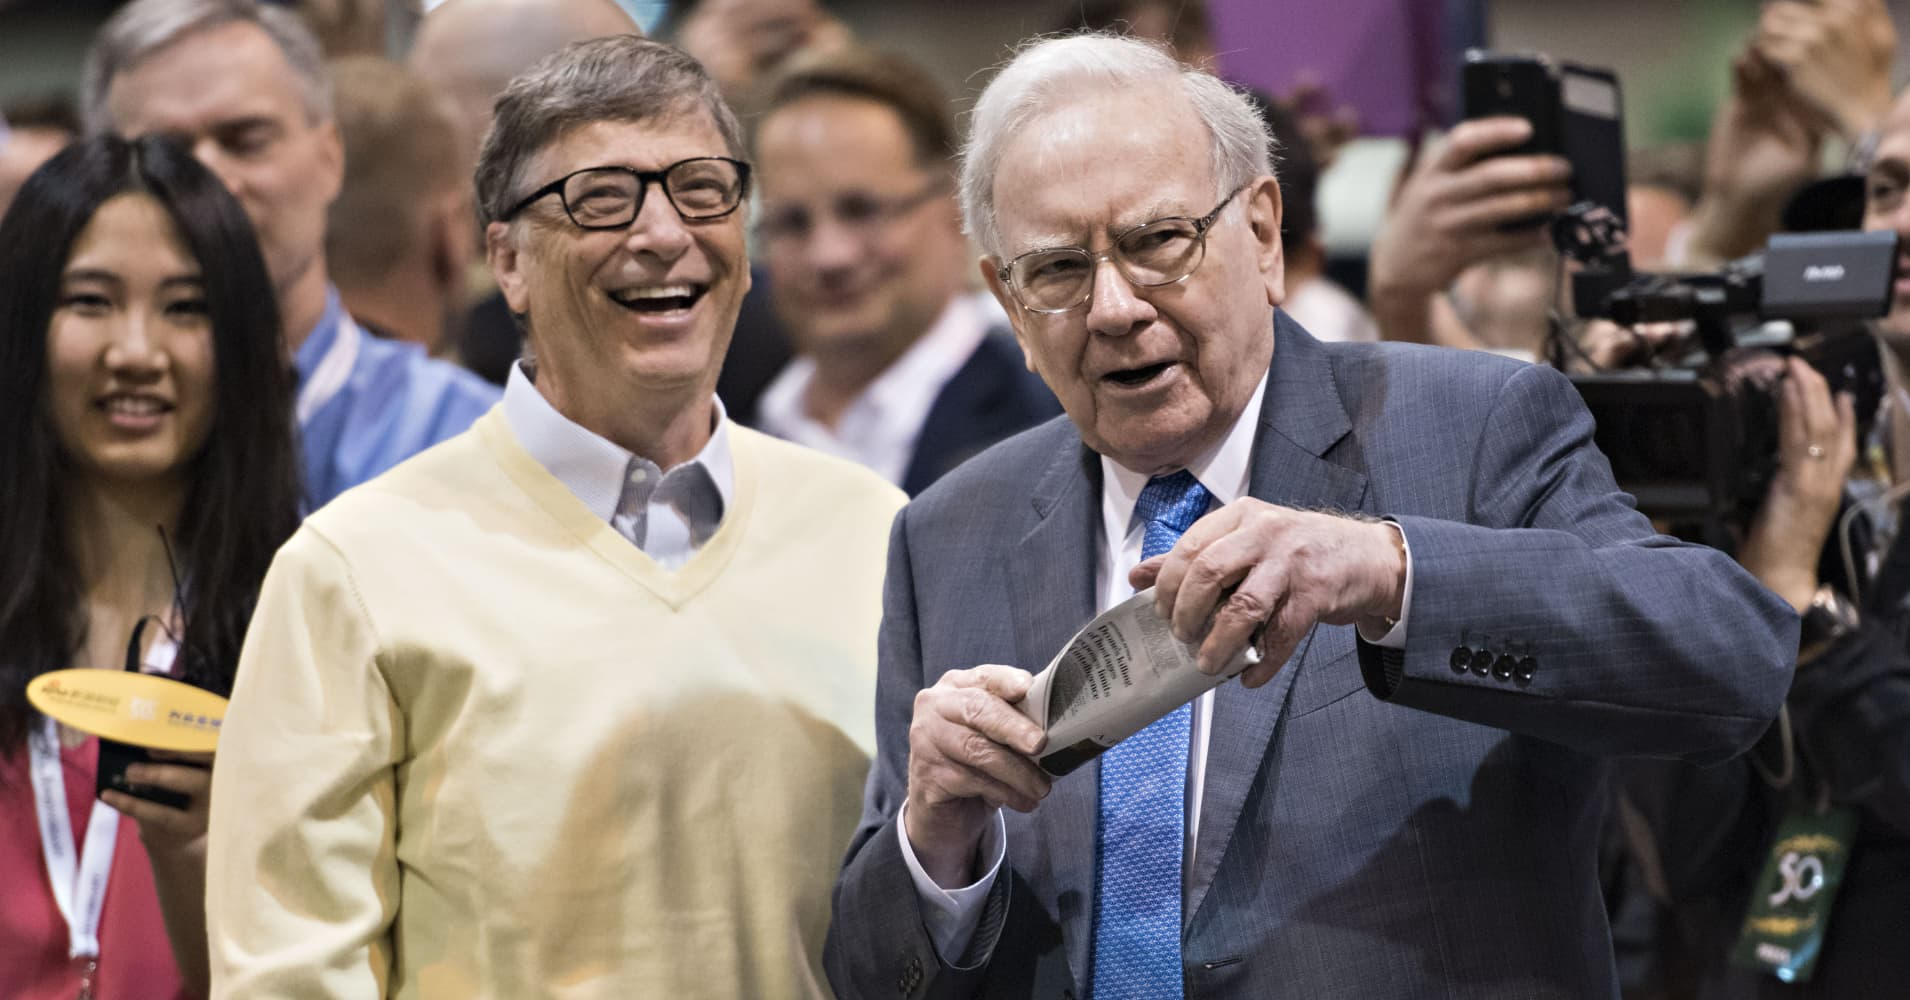 Microsoft co-founder Bill Gates and investor Warren Buffett have been friends for more than 25 years.